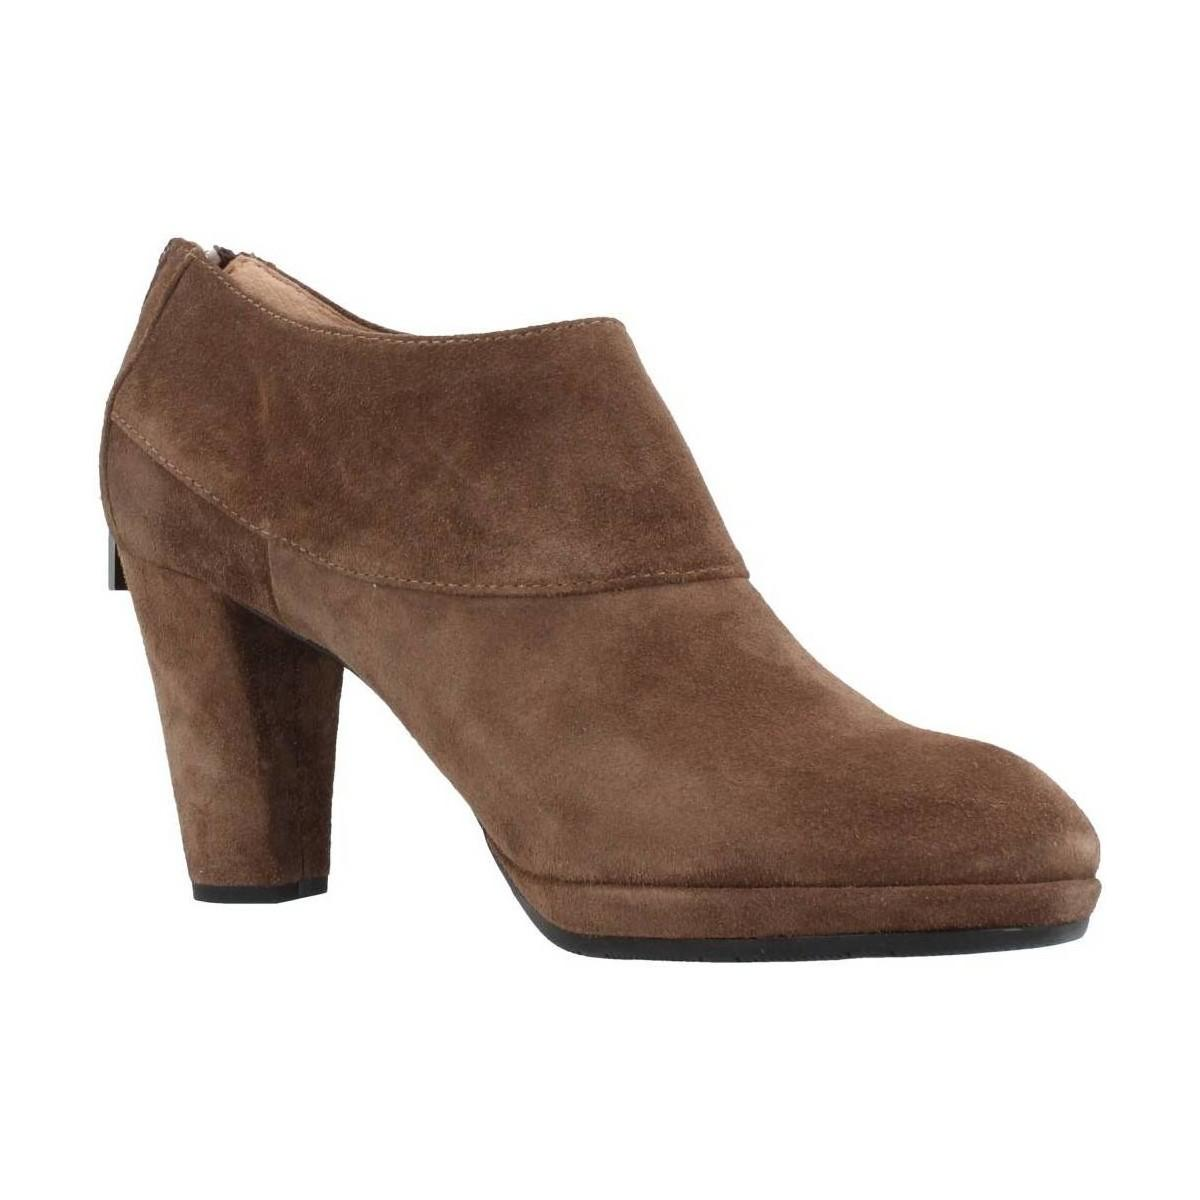 Stonefly Greta 1 Women's Low Ankle Boots In Beige in Natural